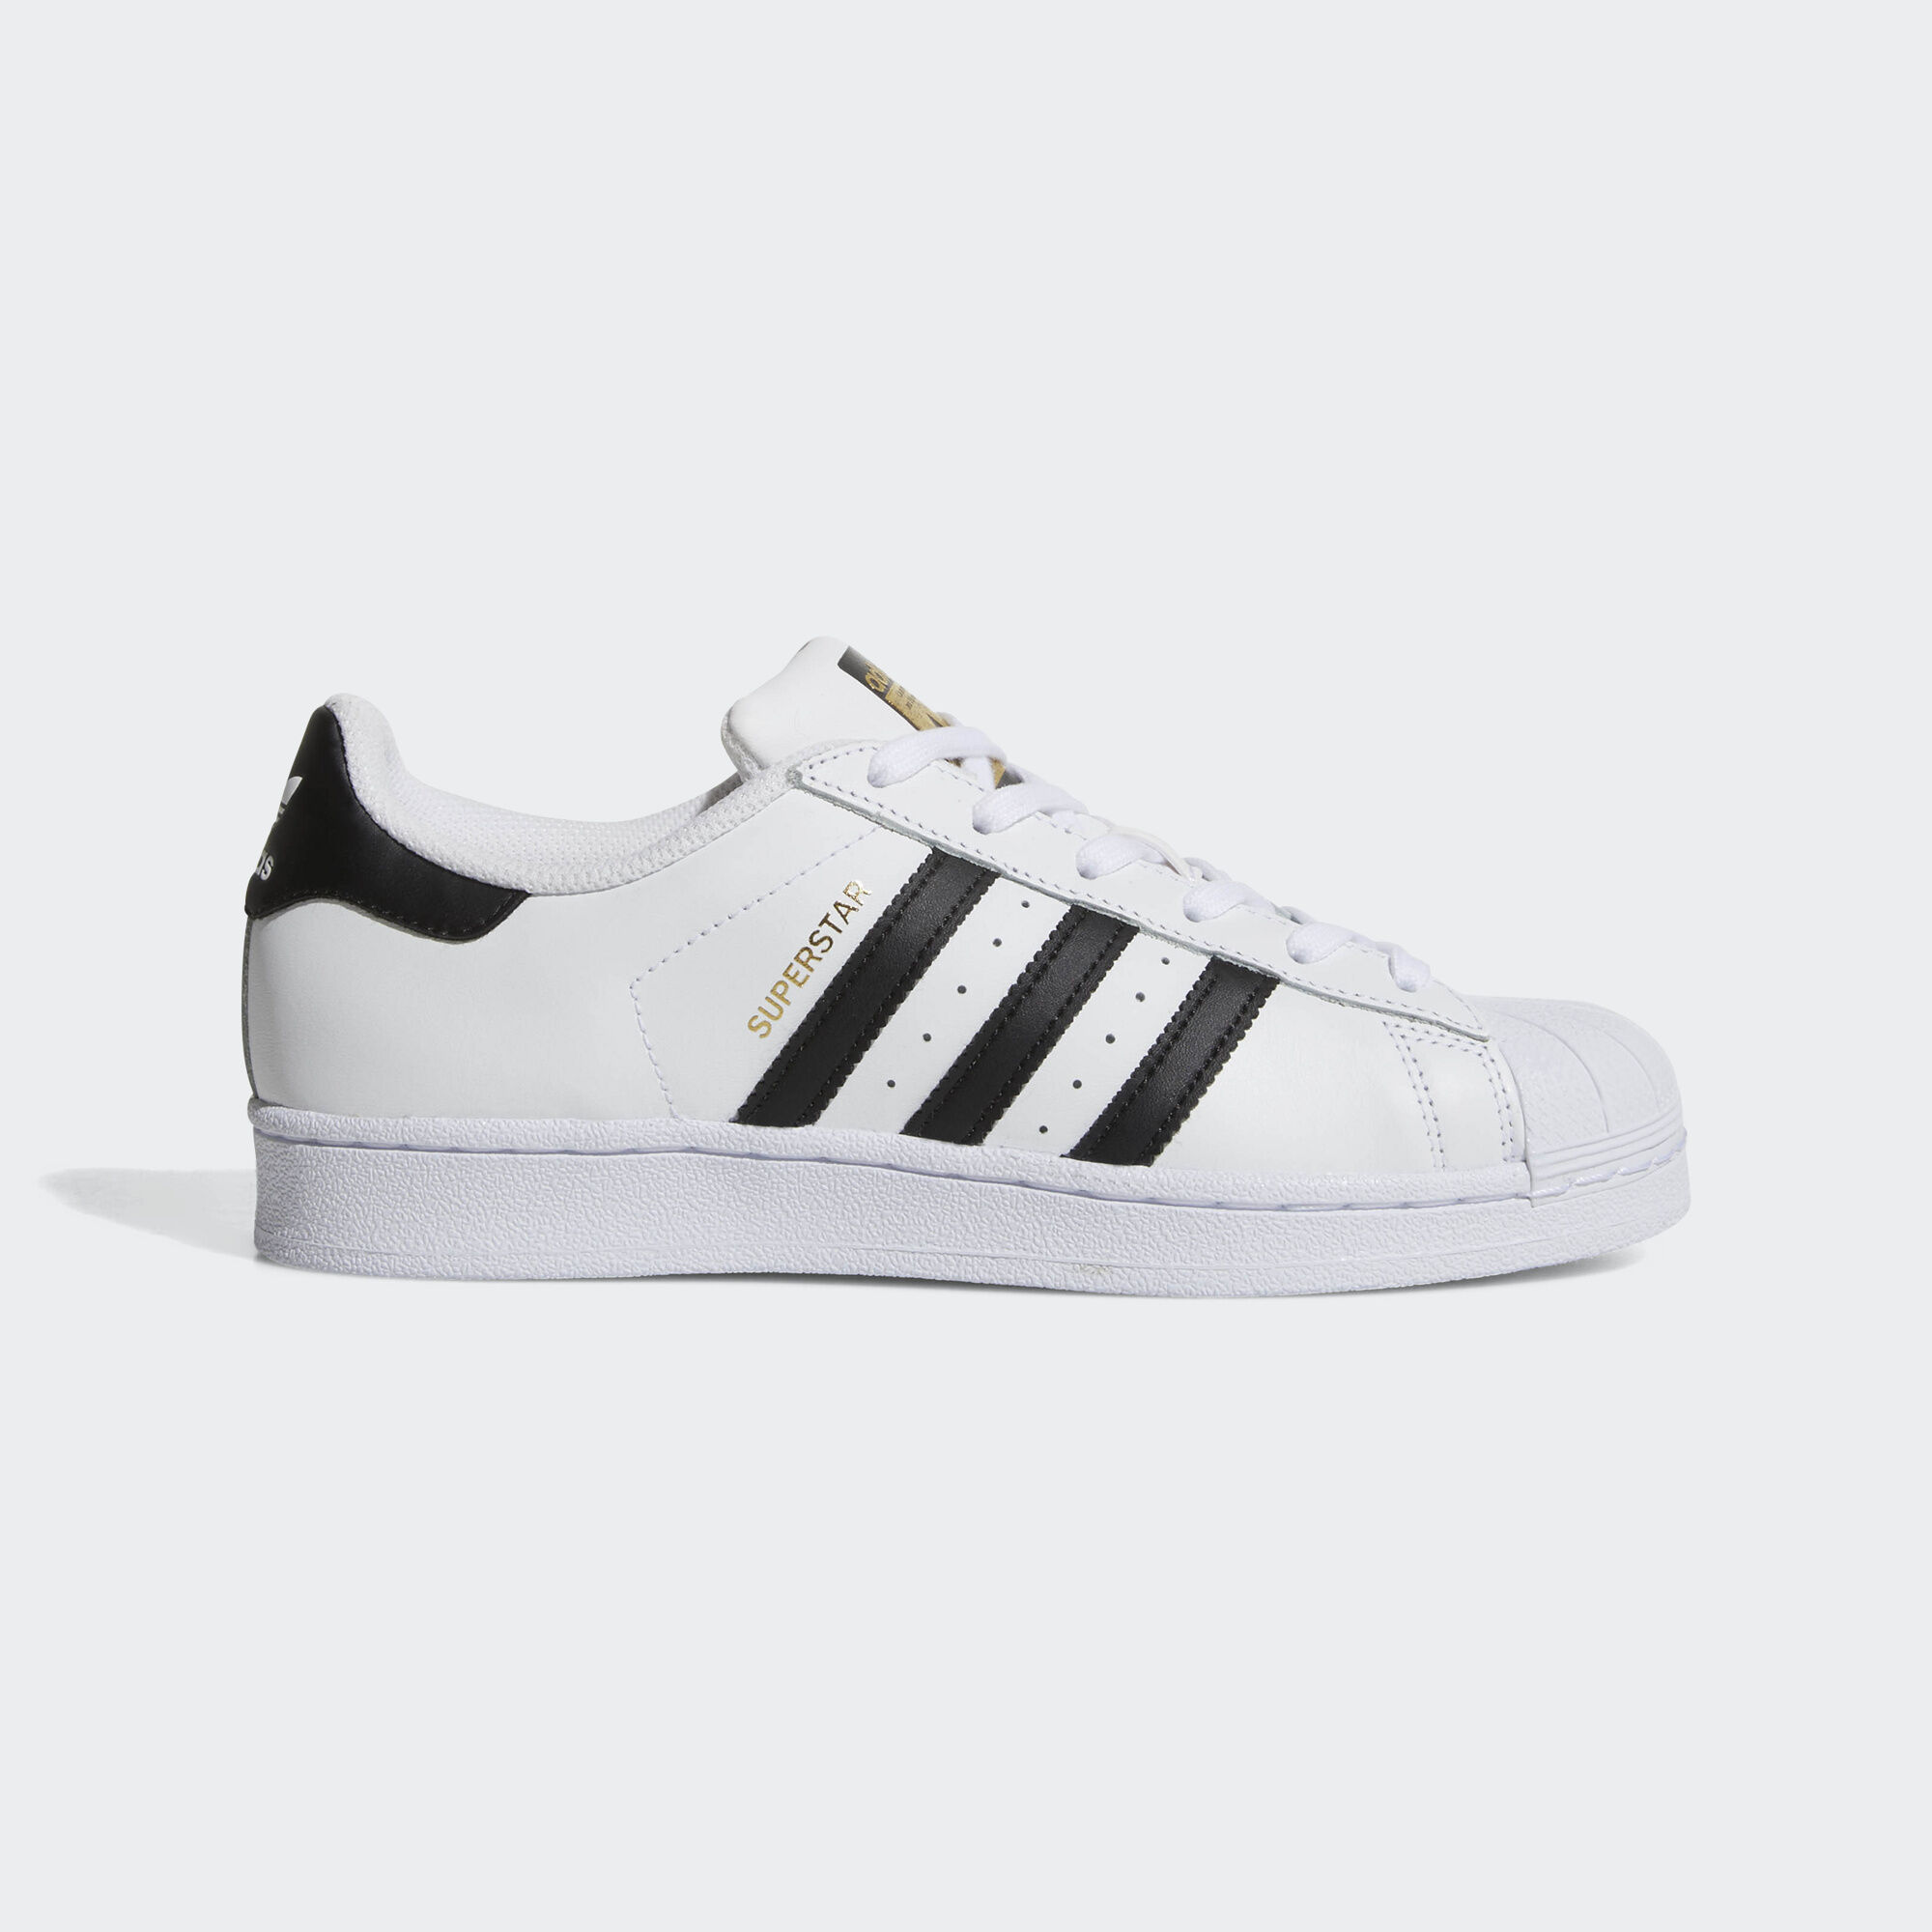 adidas shoes model number